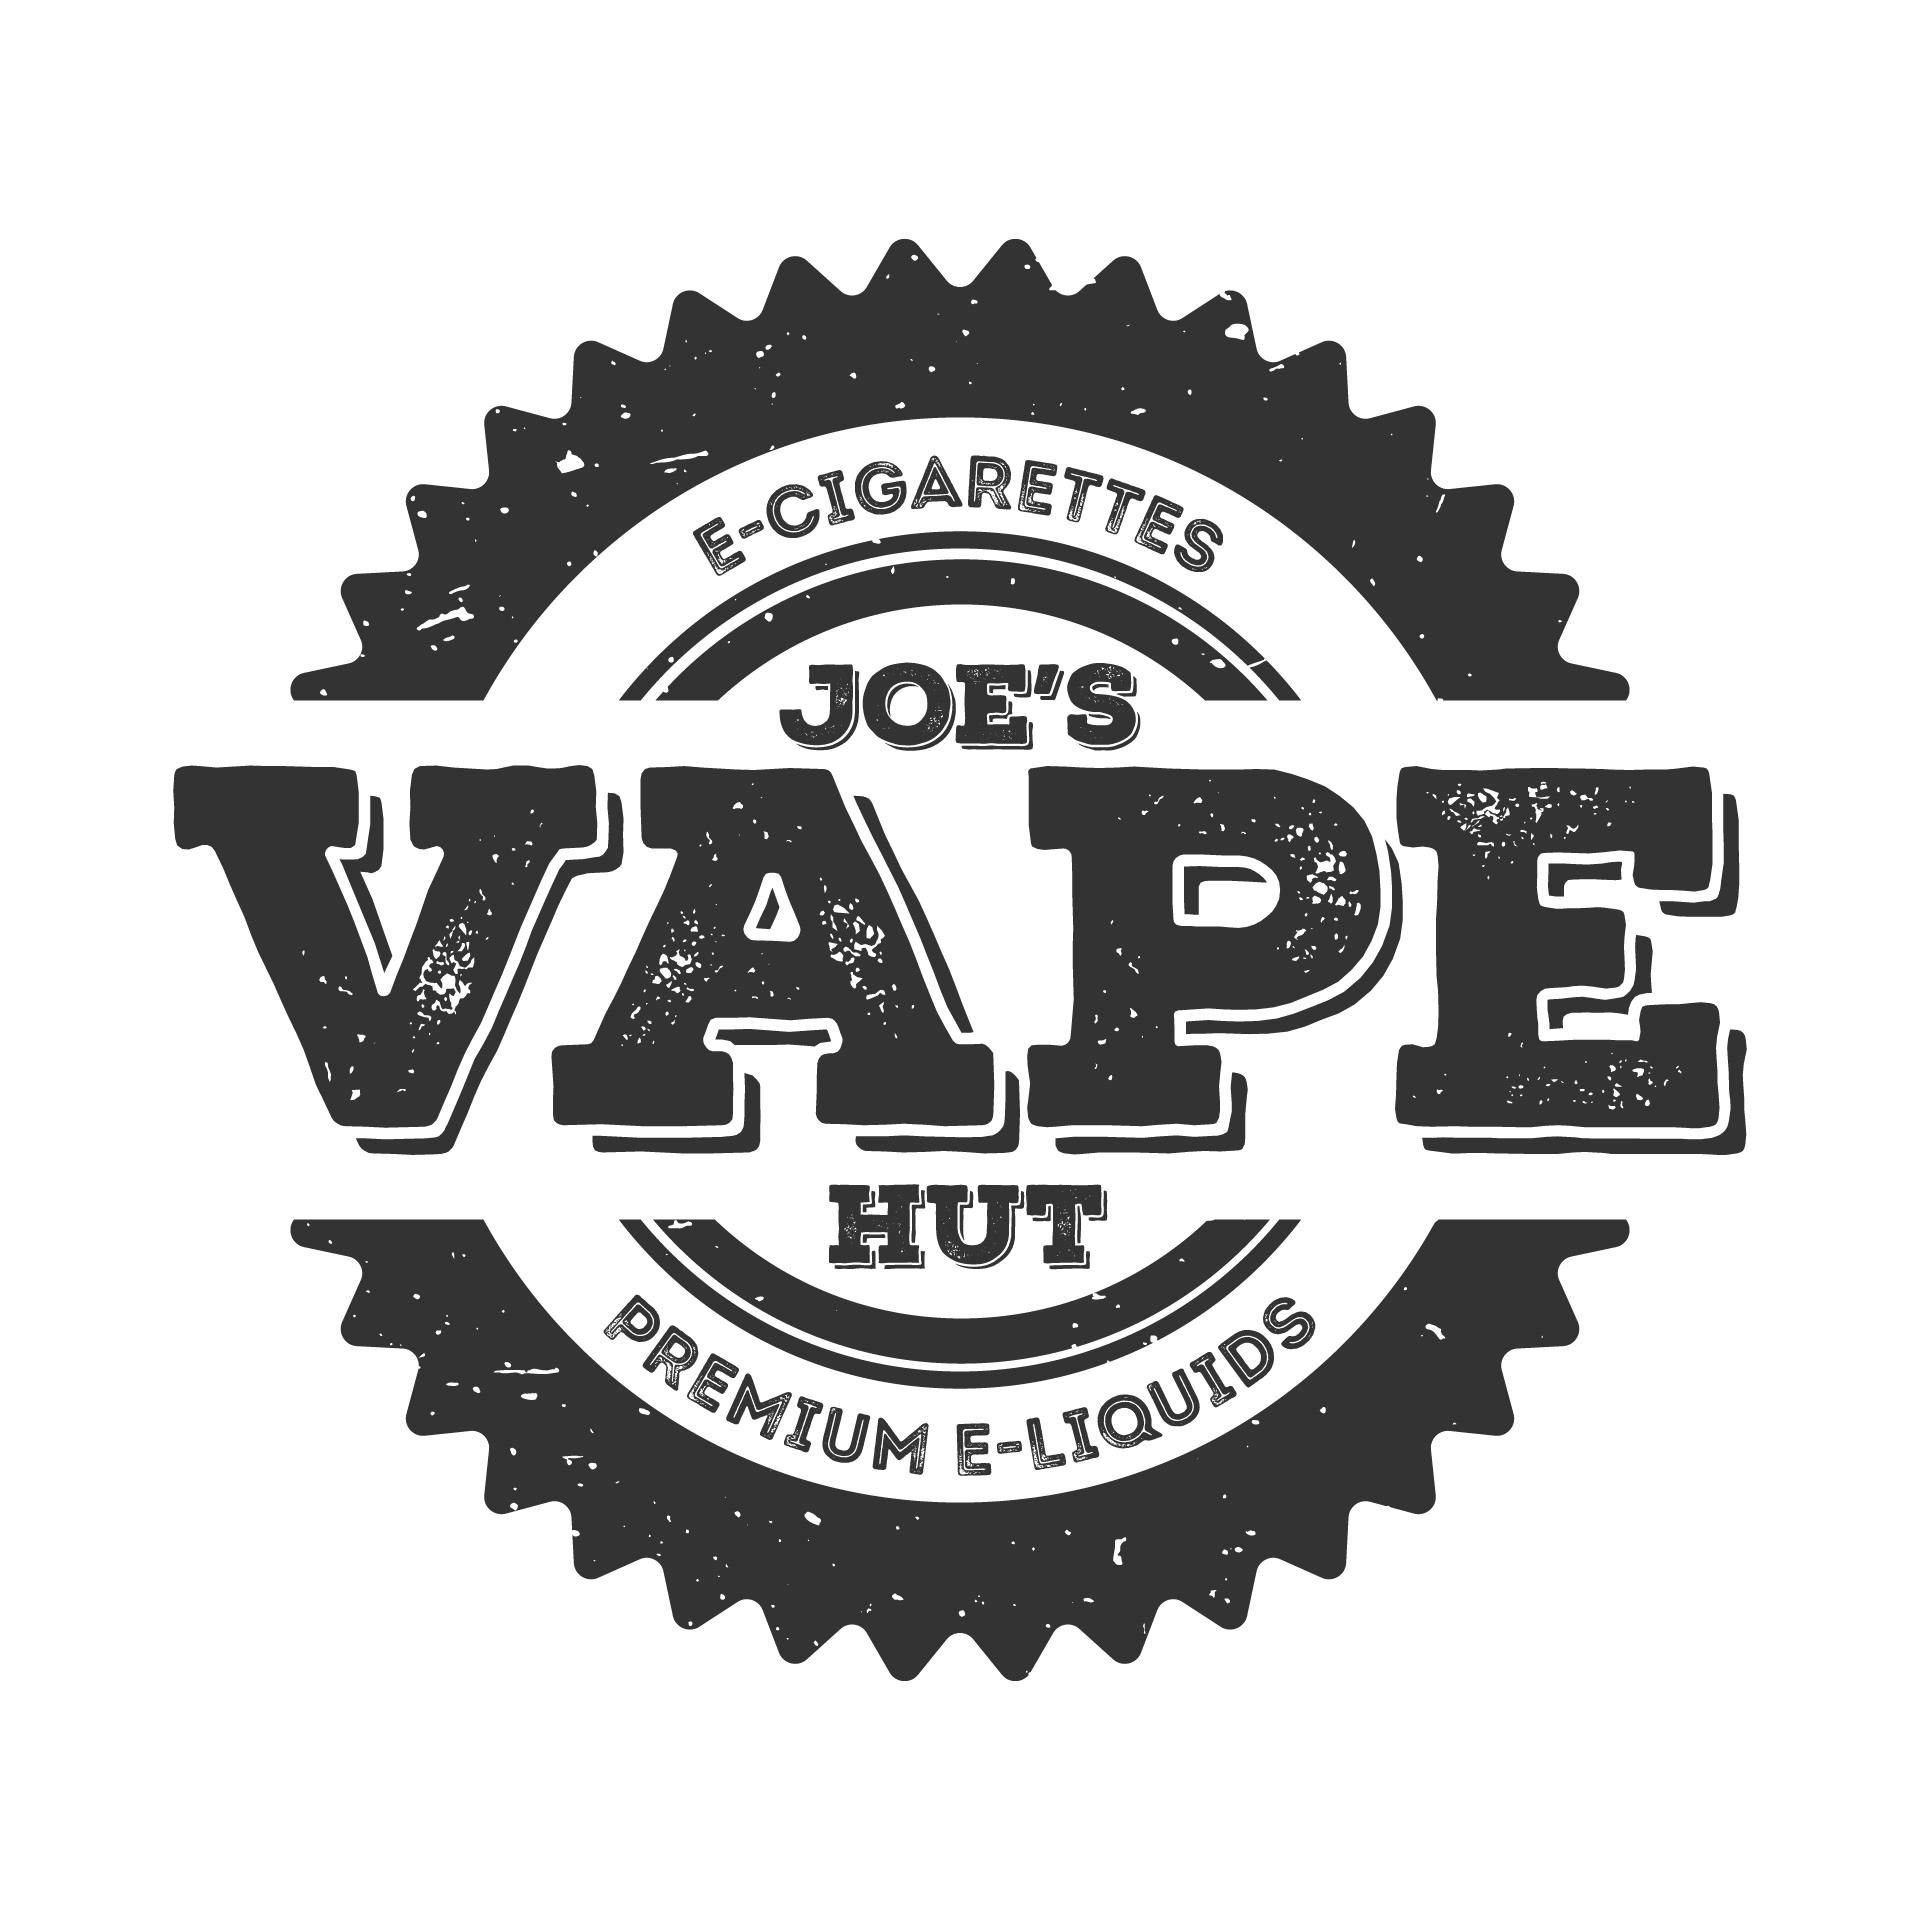 Joe's Vape Hut-01-01